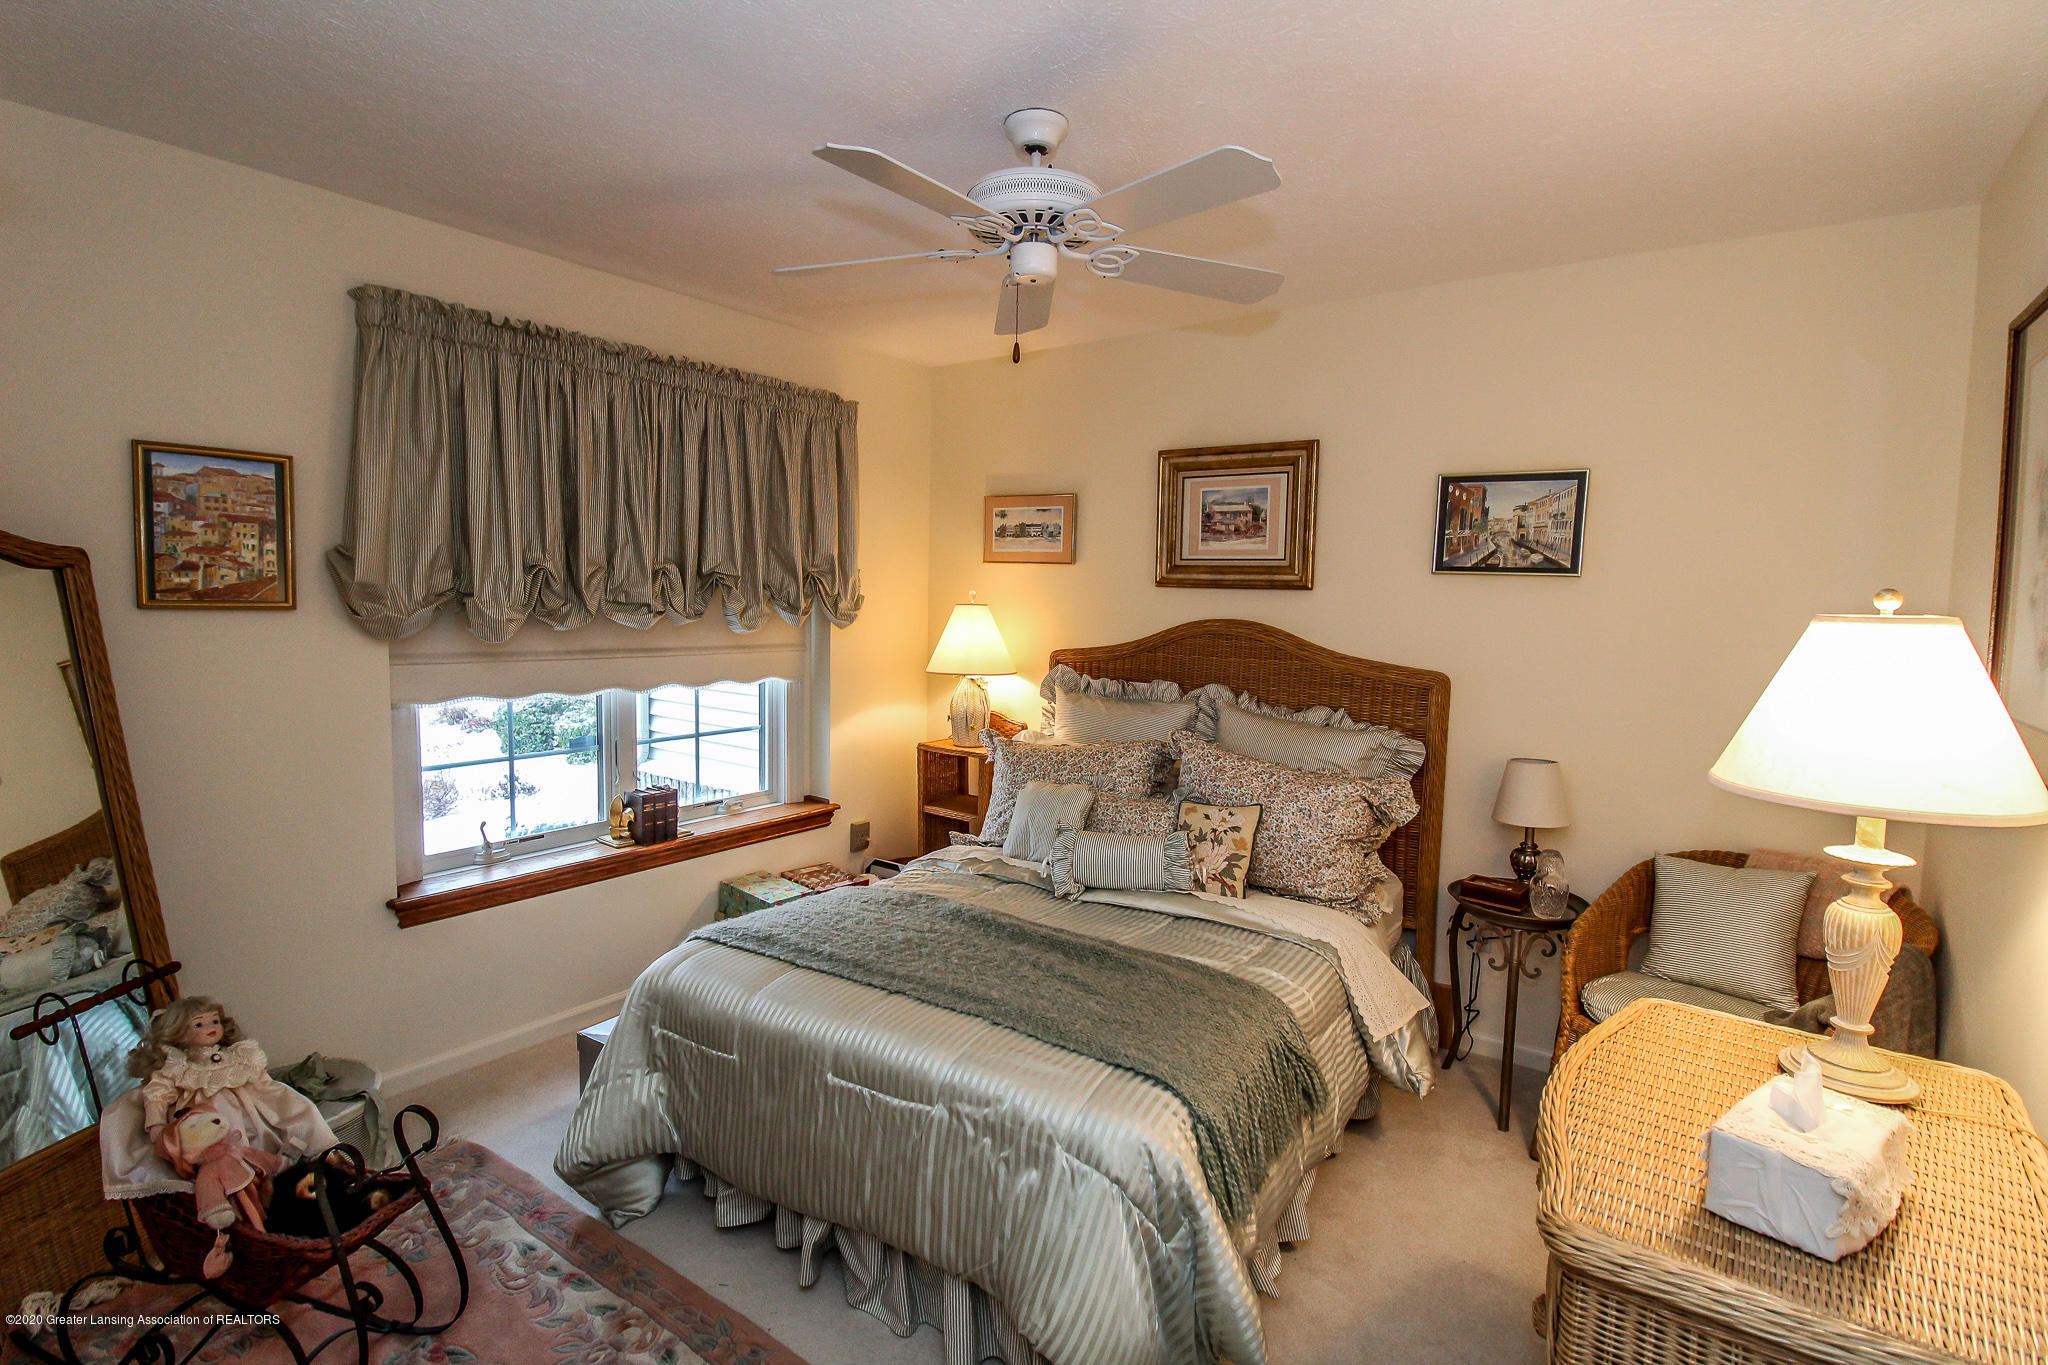 516 Cherbourg Dr - Bedroom - 19